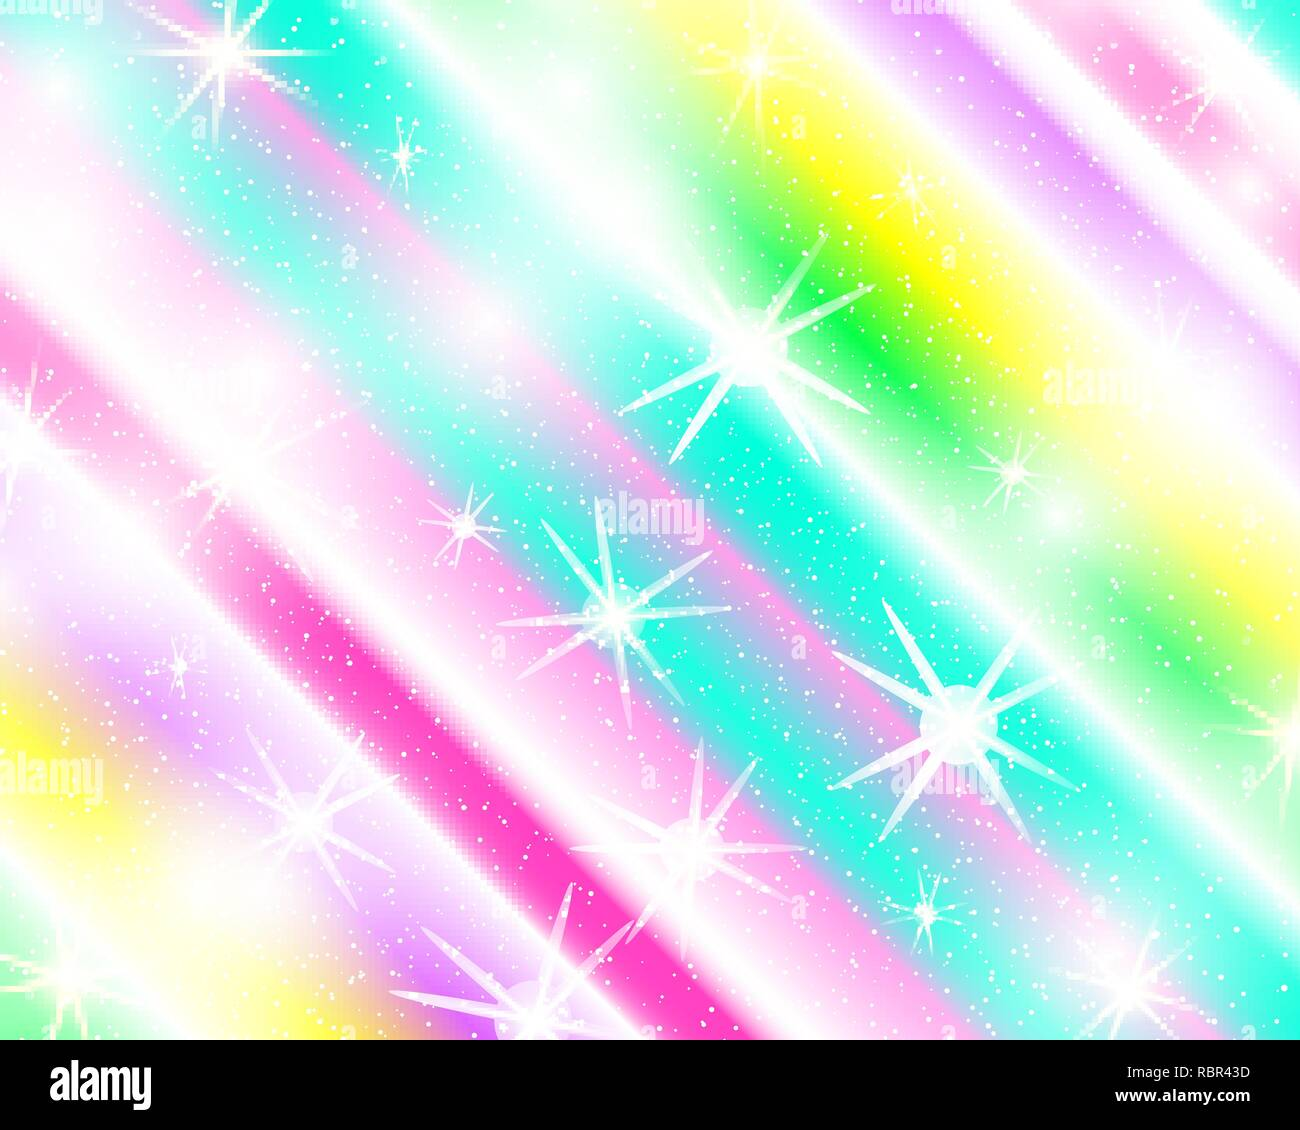 unicorn rainbow background holographic sky in pastel color bright mermaid pattern in princess colors vector illustration fantasy gradient colorful RBR43D